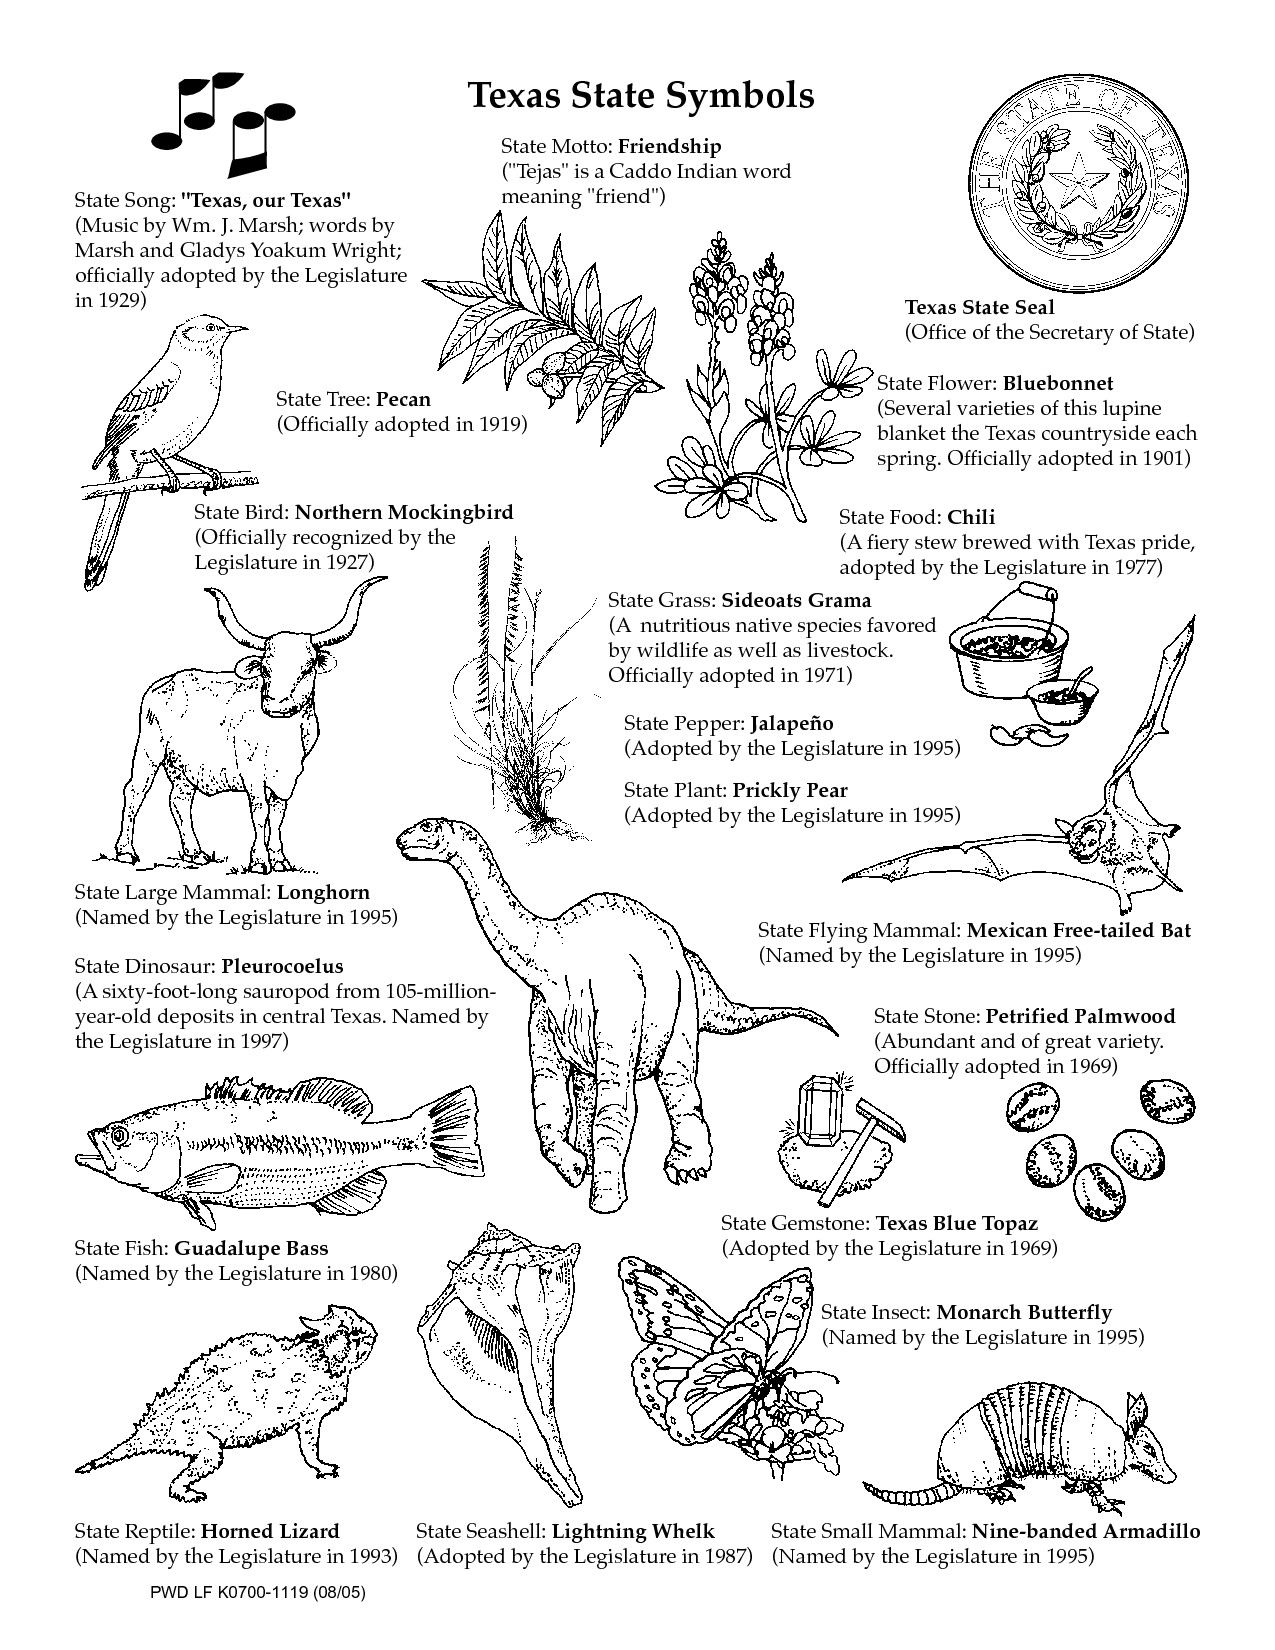 Texas Symbols Coloring Pages Awesome Texas Symbols